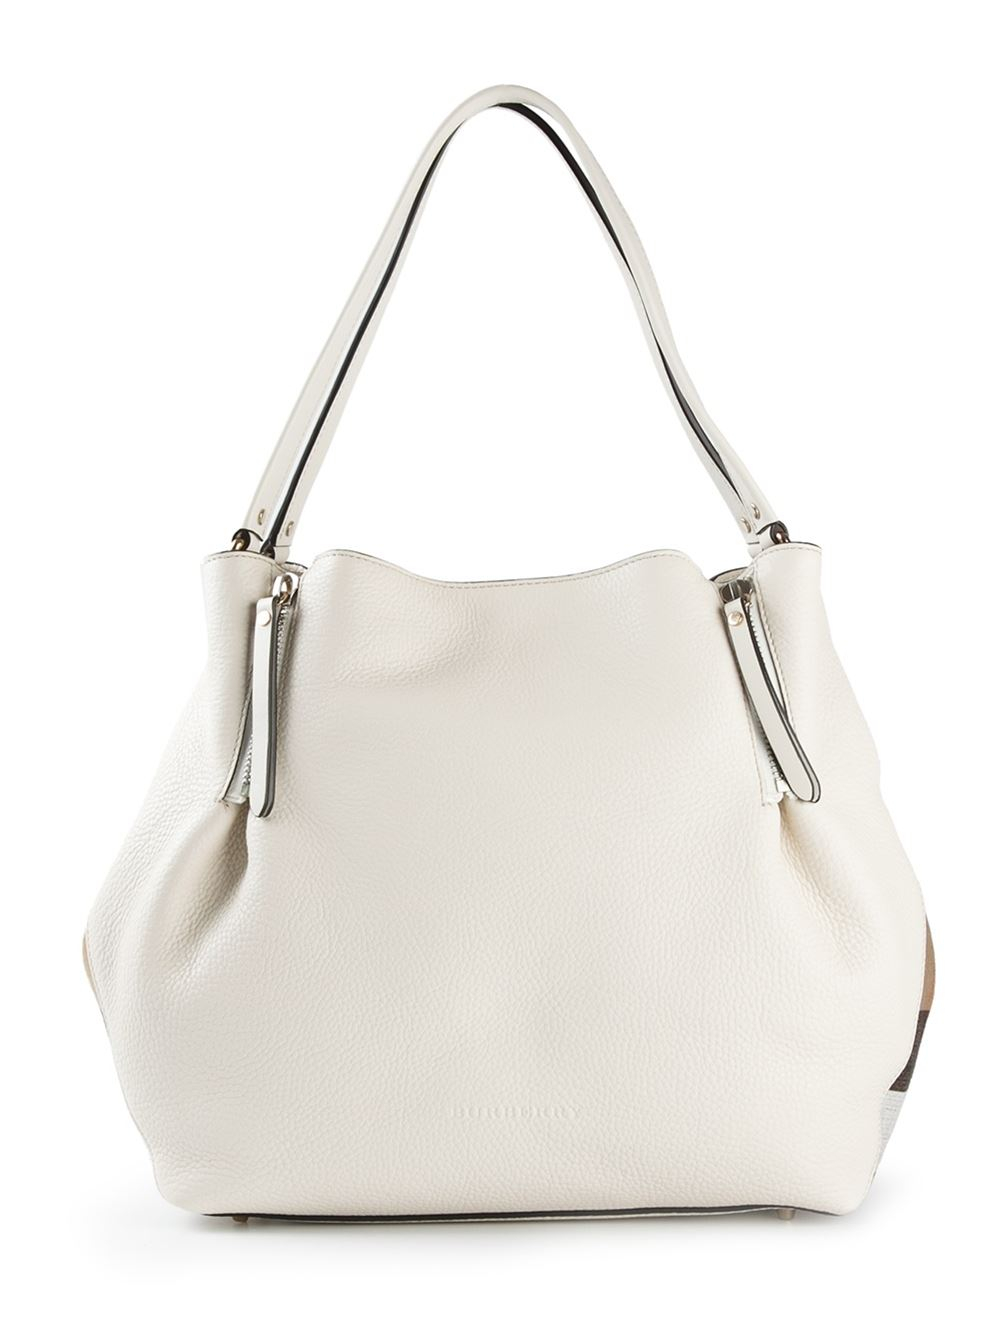 Lyst - Burberry Maidstone Tote in White